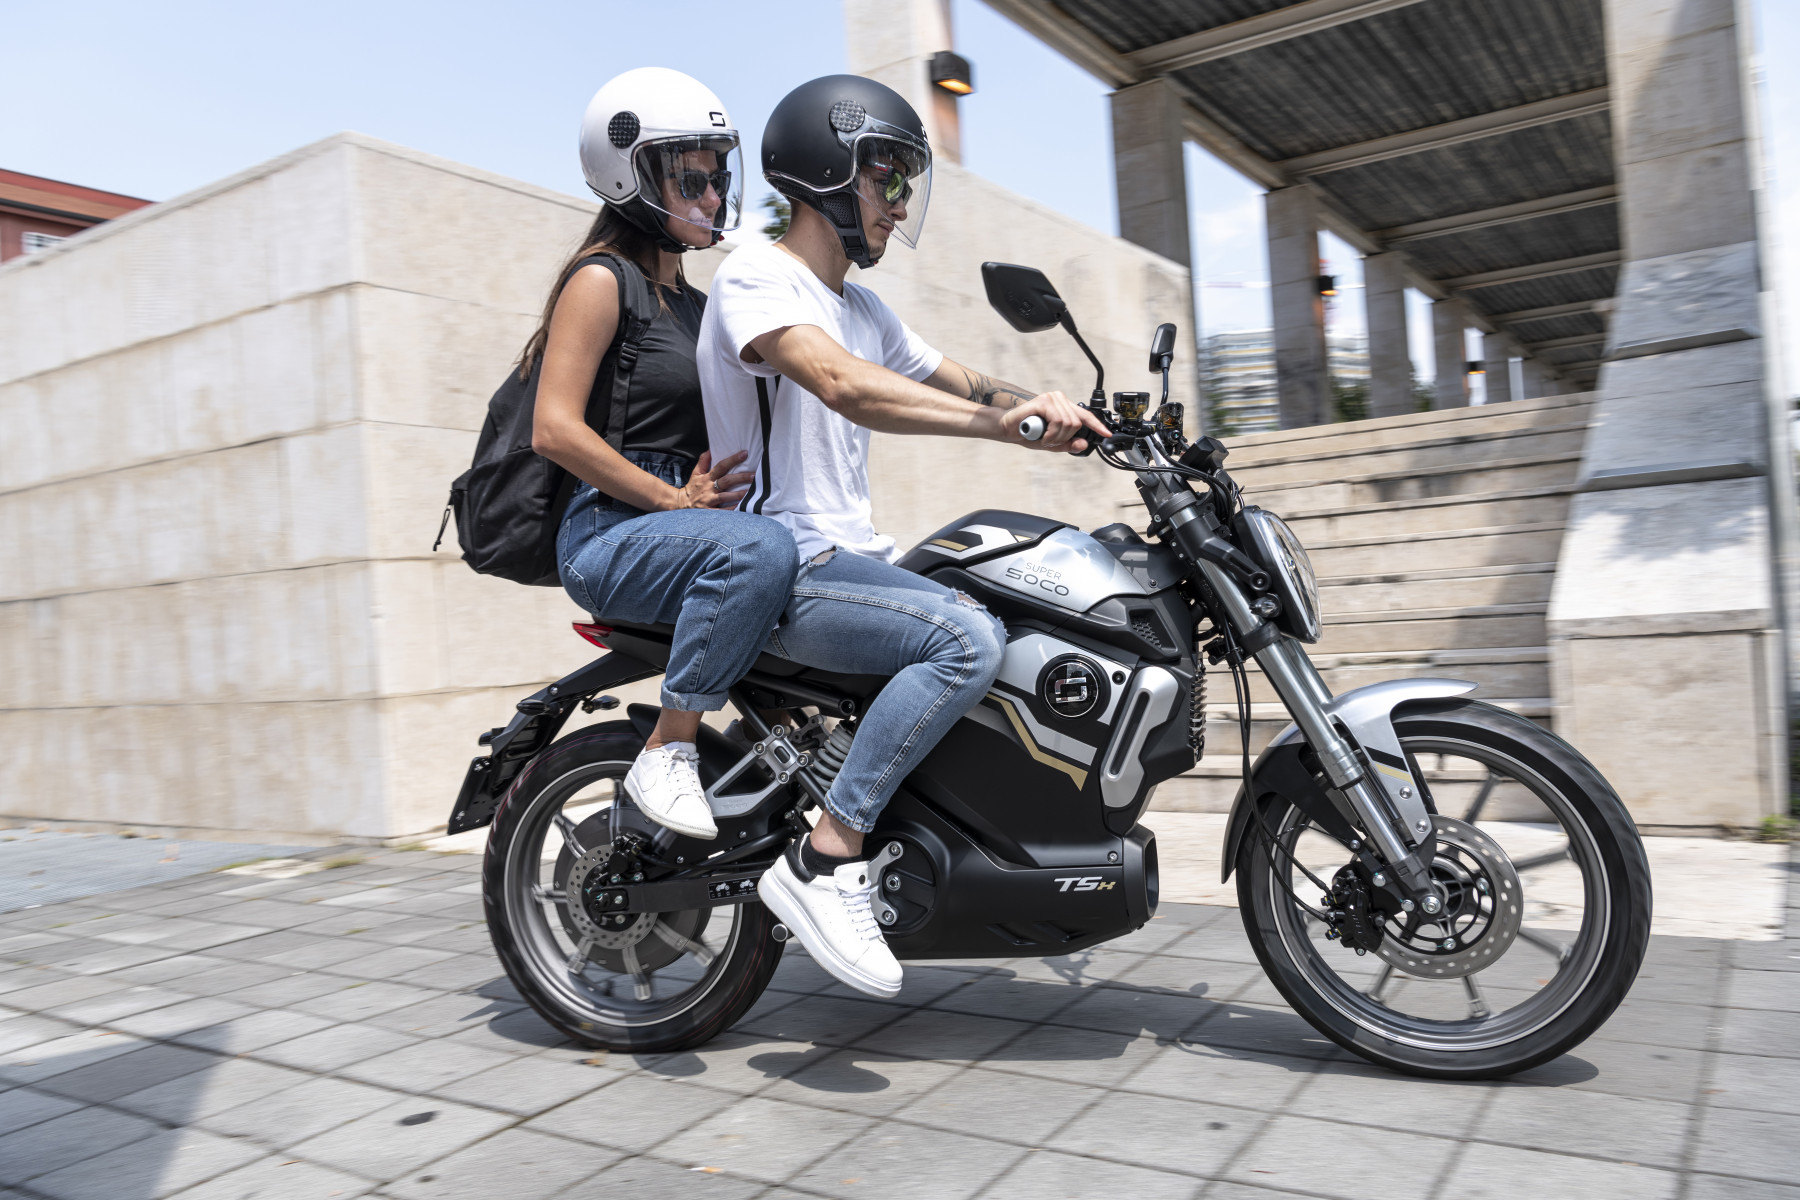 Super Soco TSx electric motorcycle being ridden with a pillion passenger